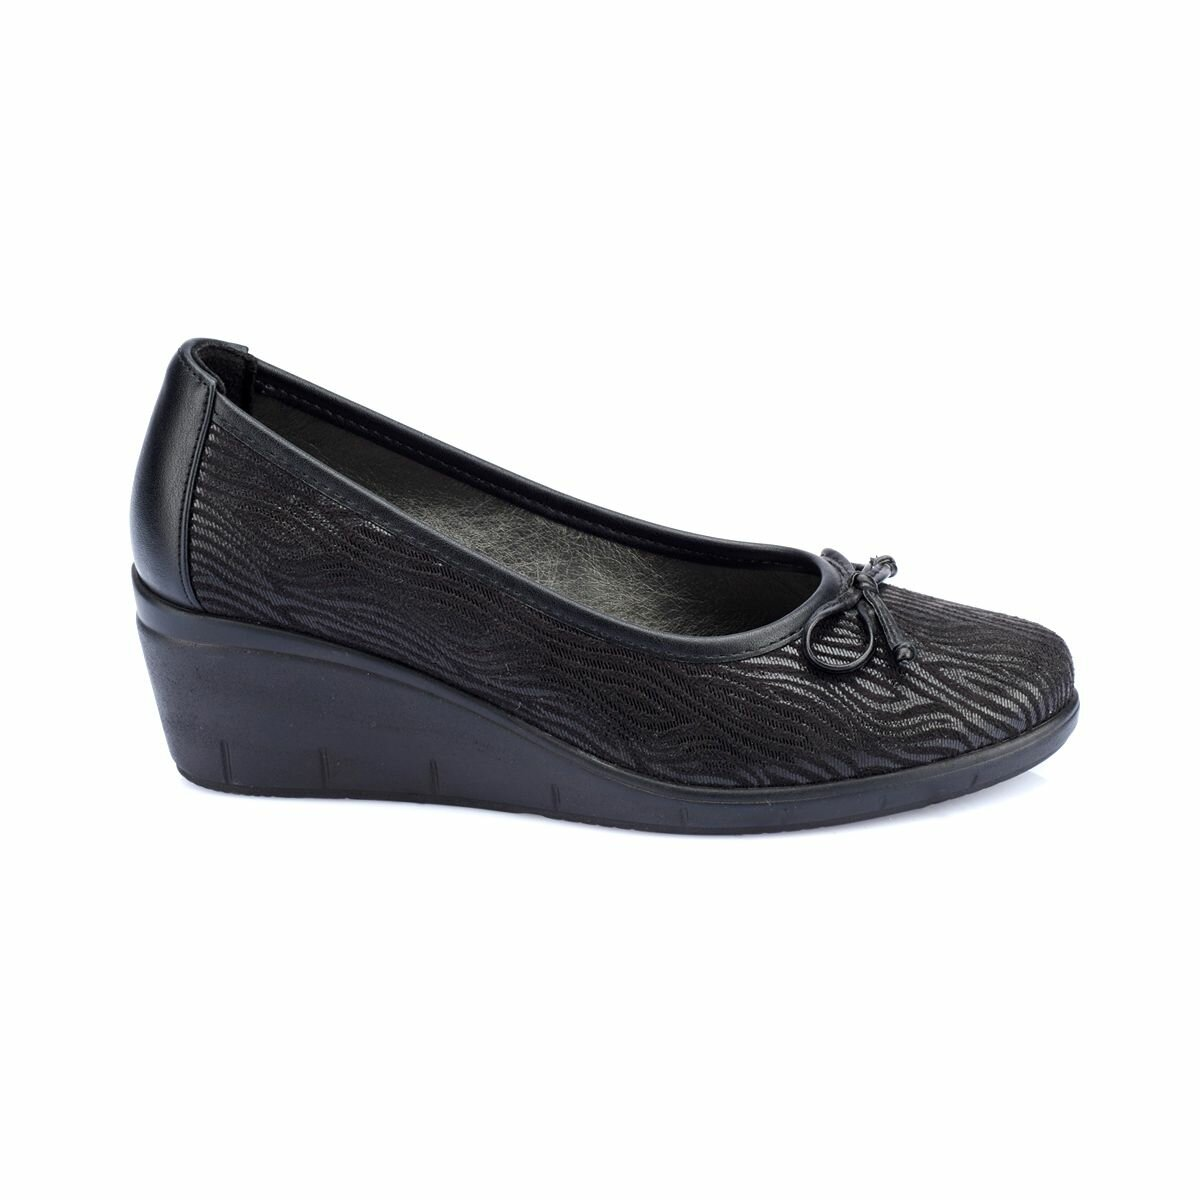 FLO 82.150005RZ Black Women Shoes Polaris